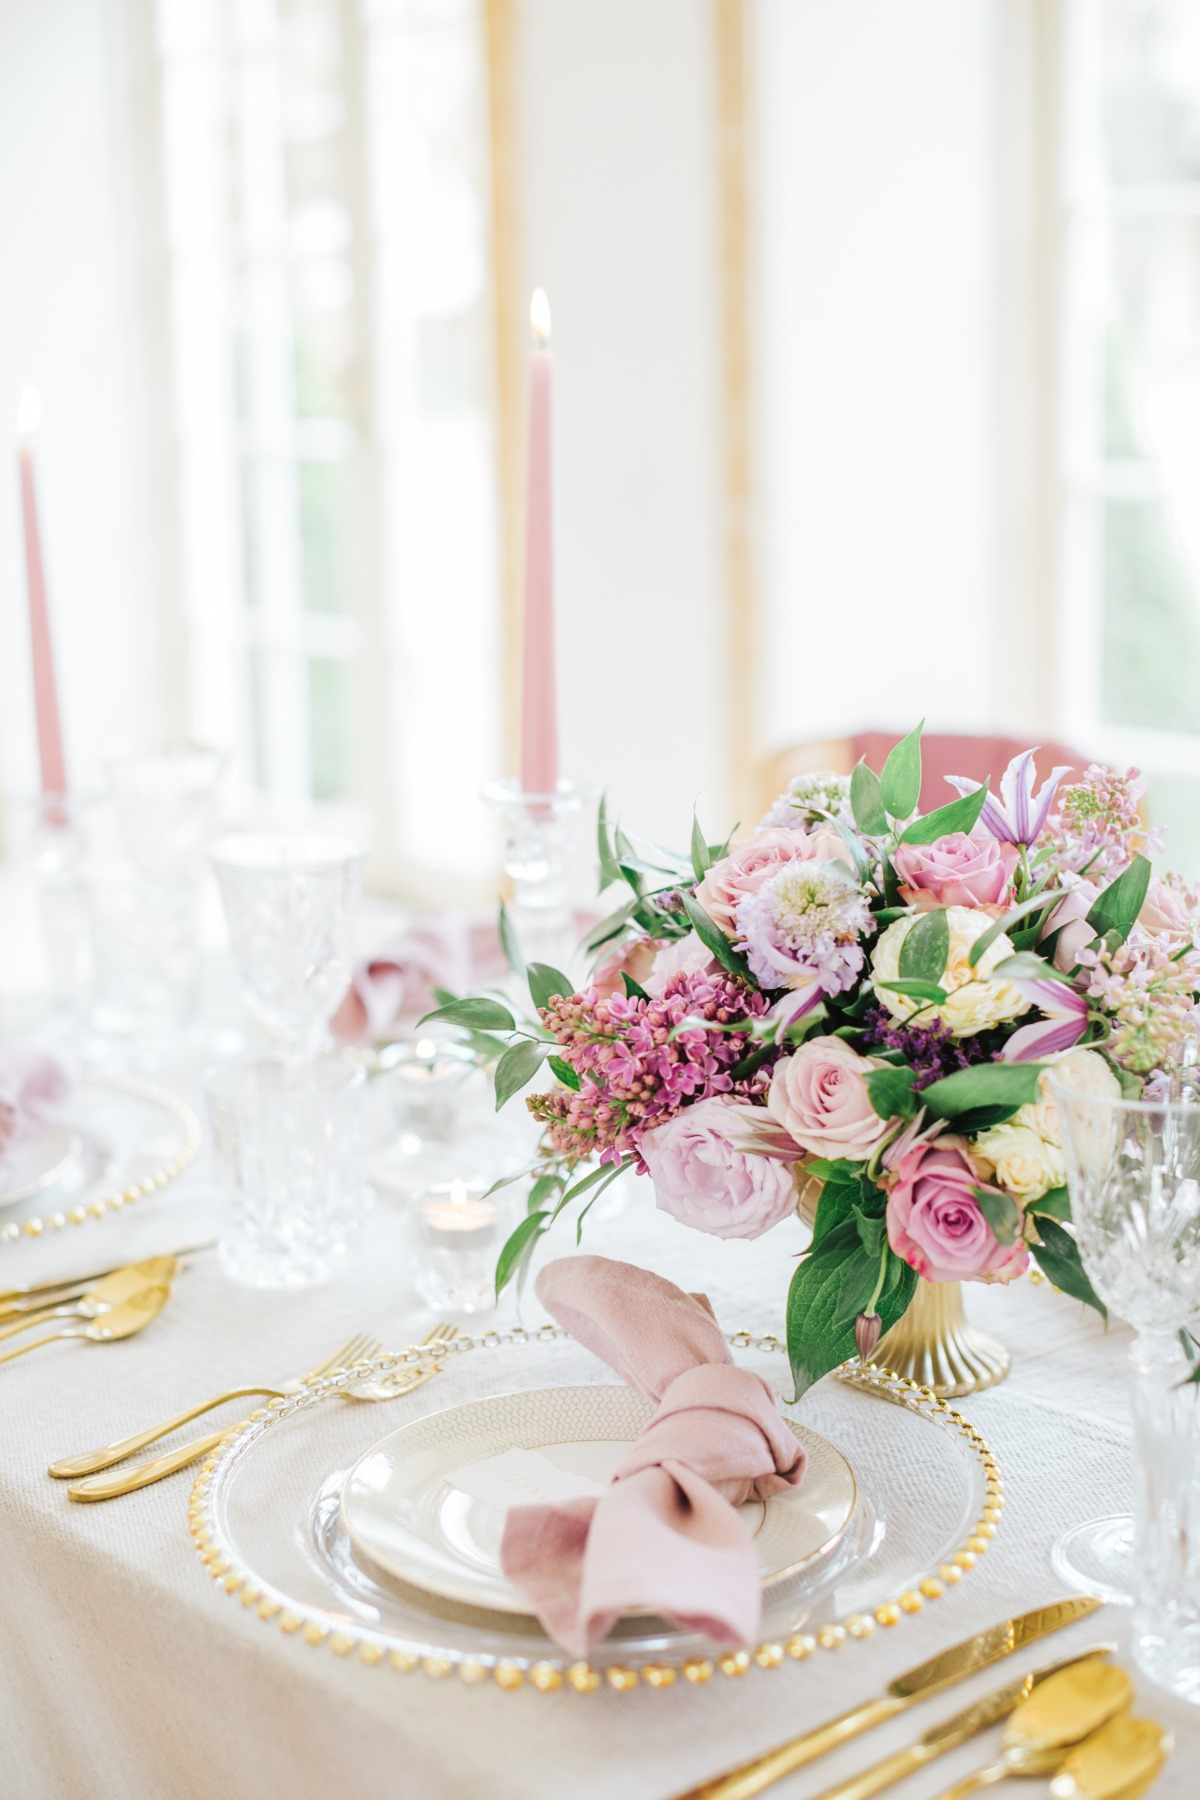 blush and gold wedding table decor ideas